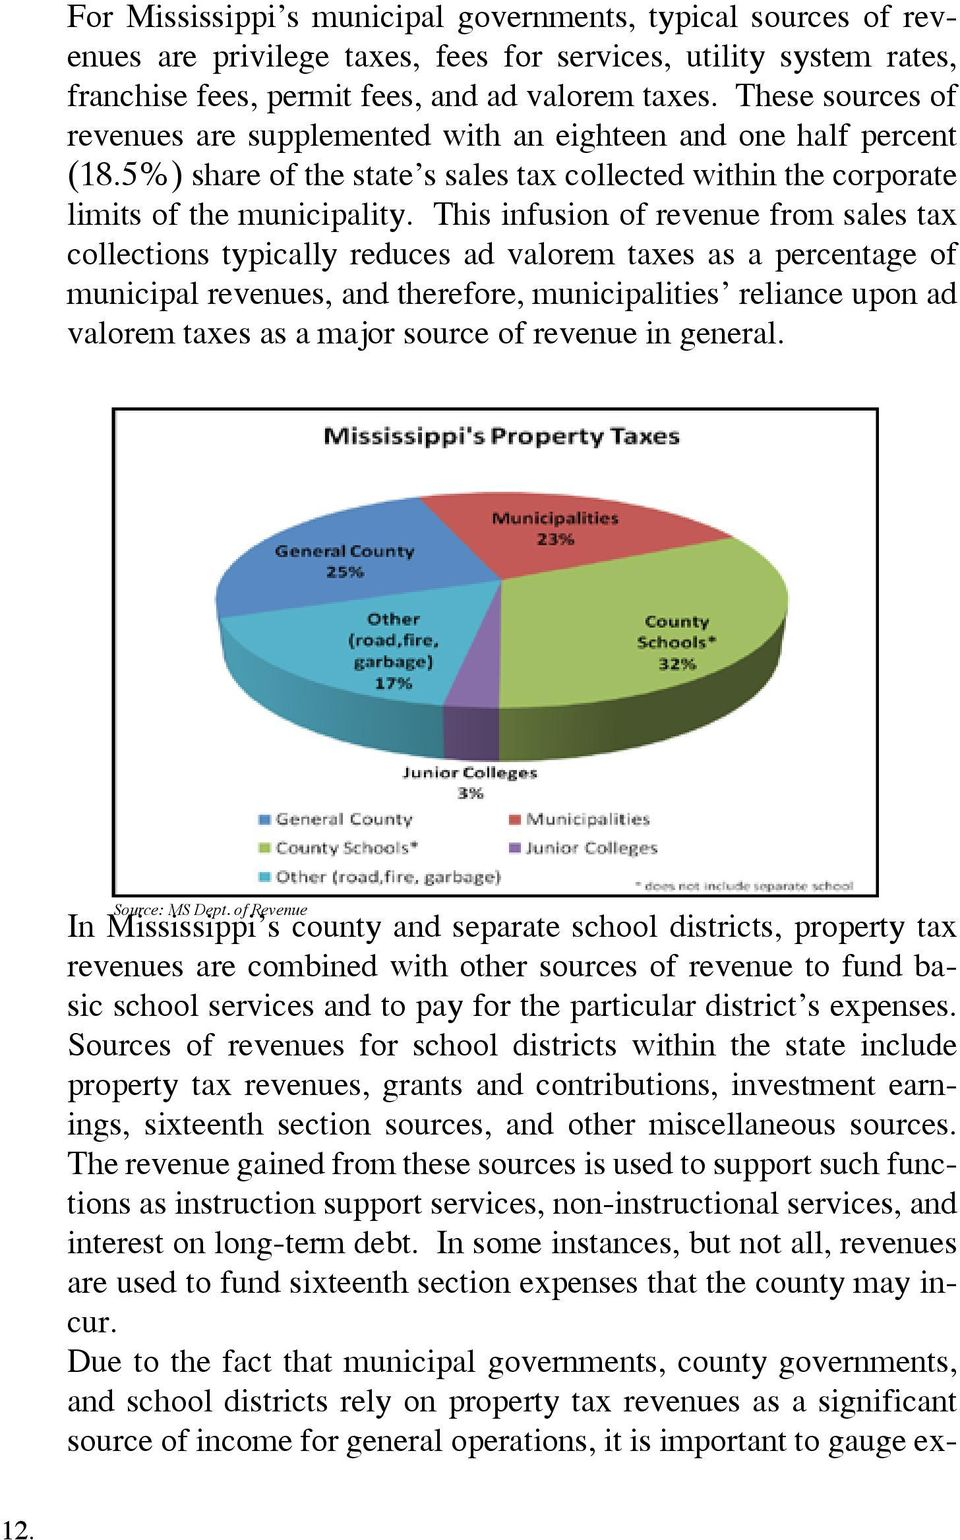 Understanding Mississippi Property Taxes - PDF